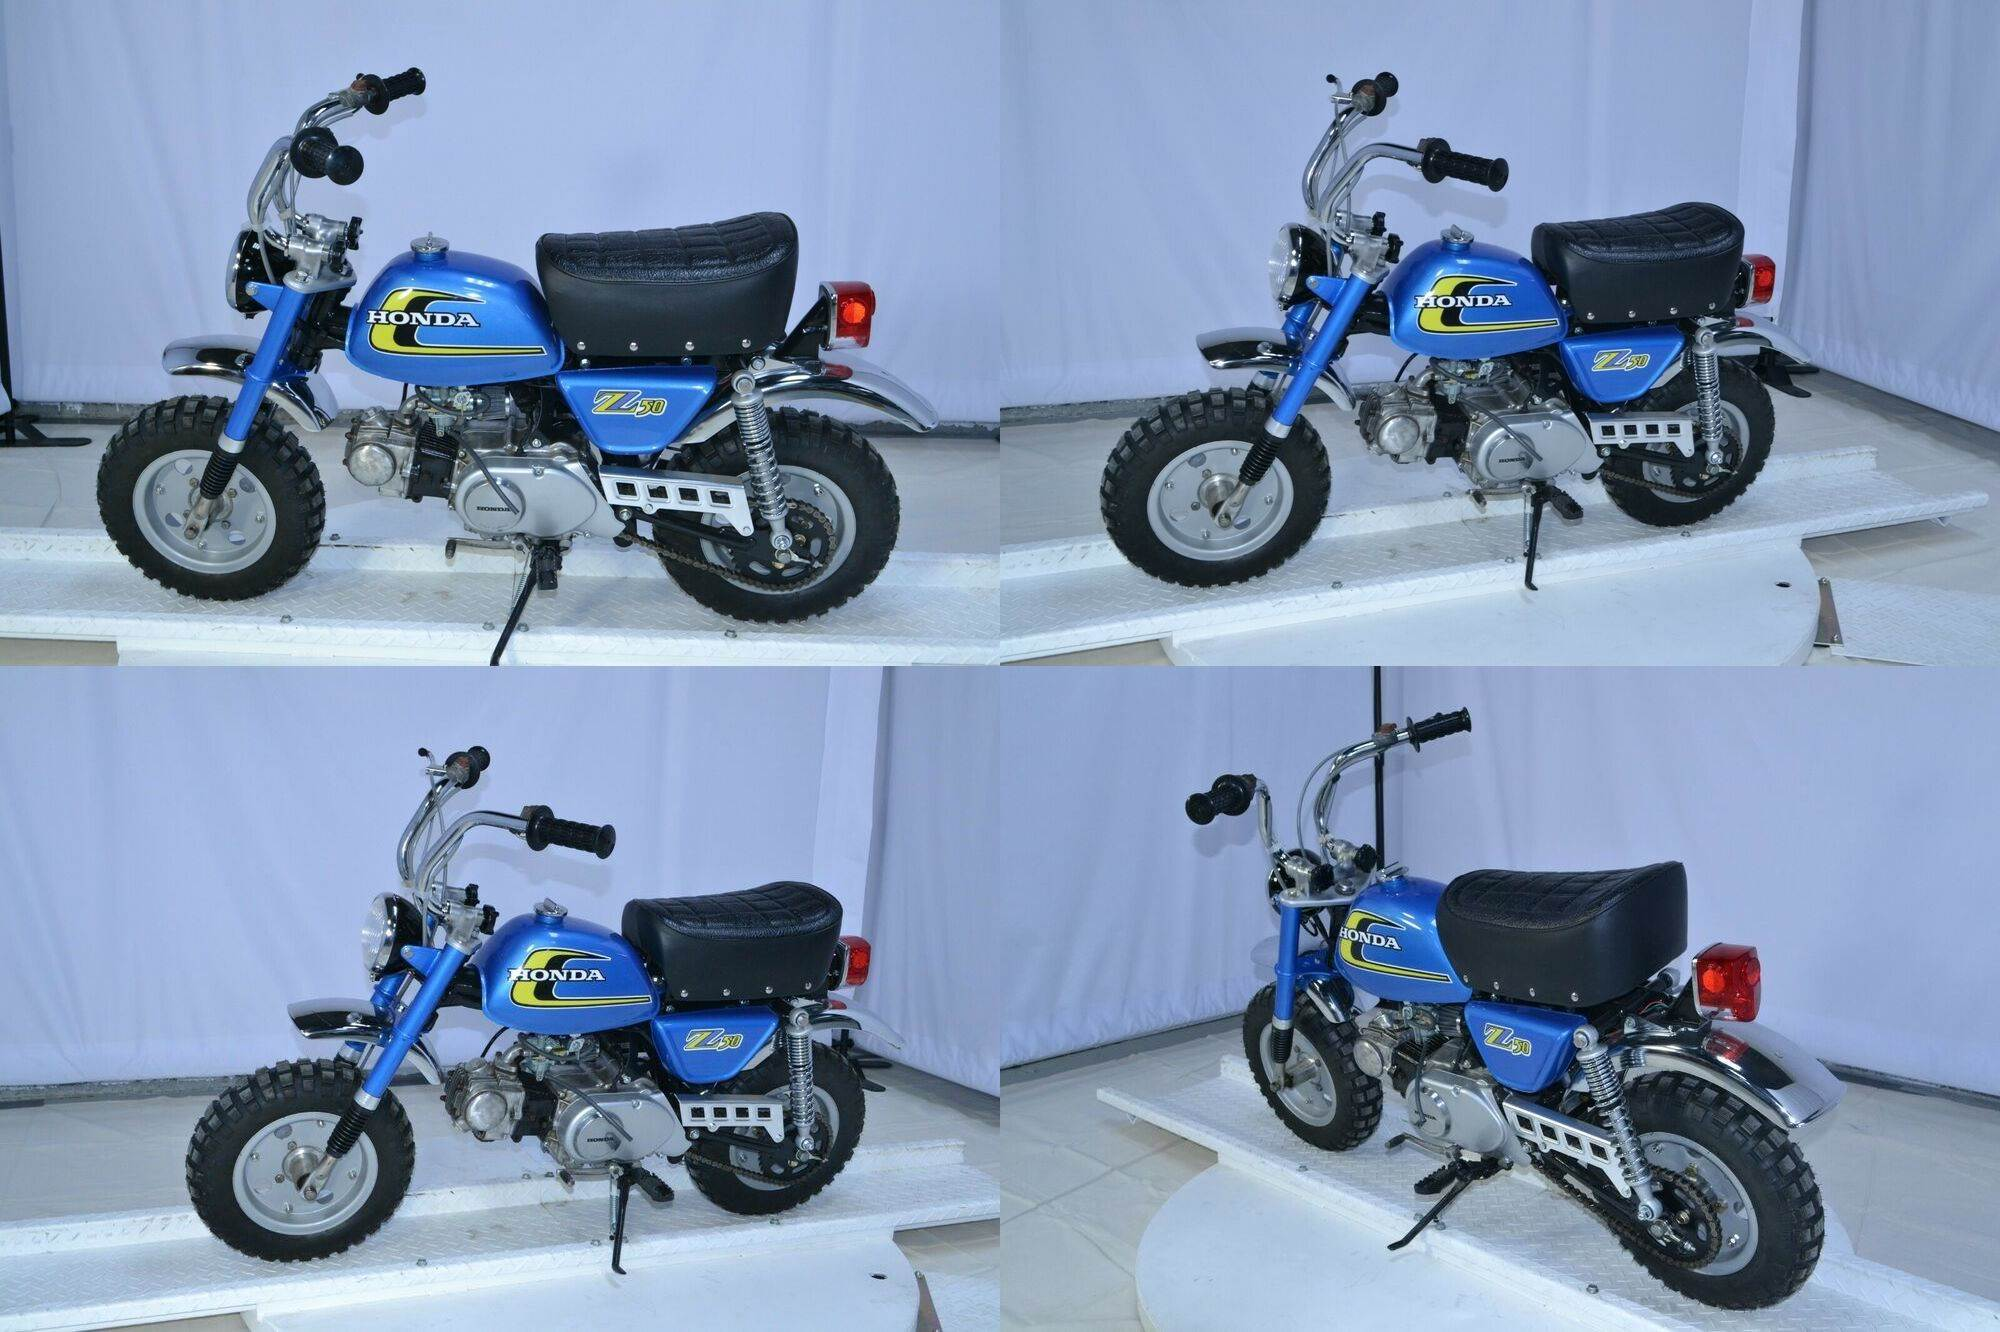 1974 Honda Other  used for sale near me